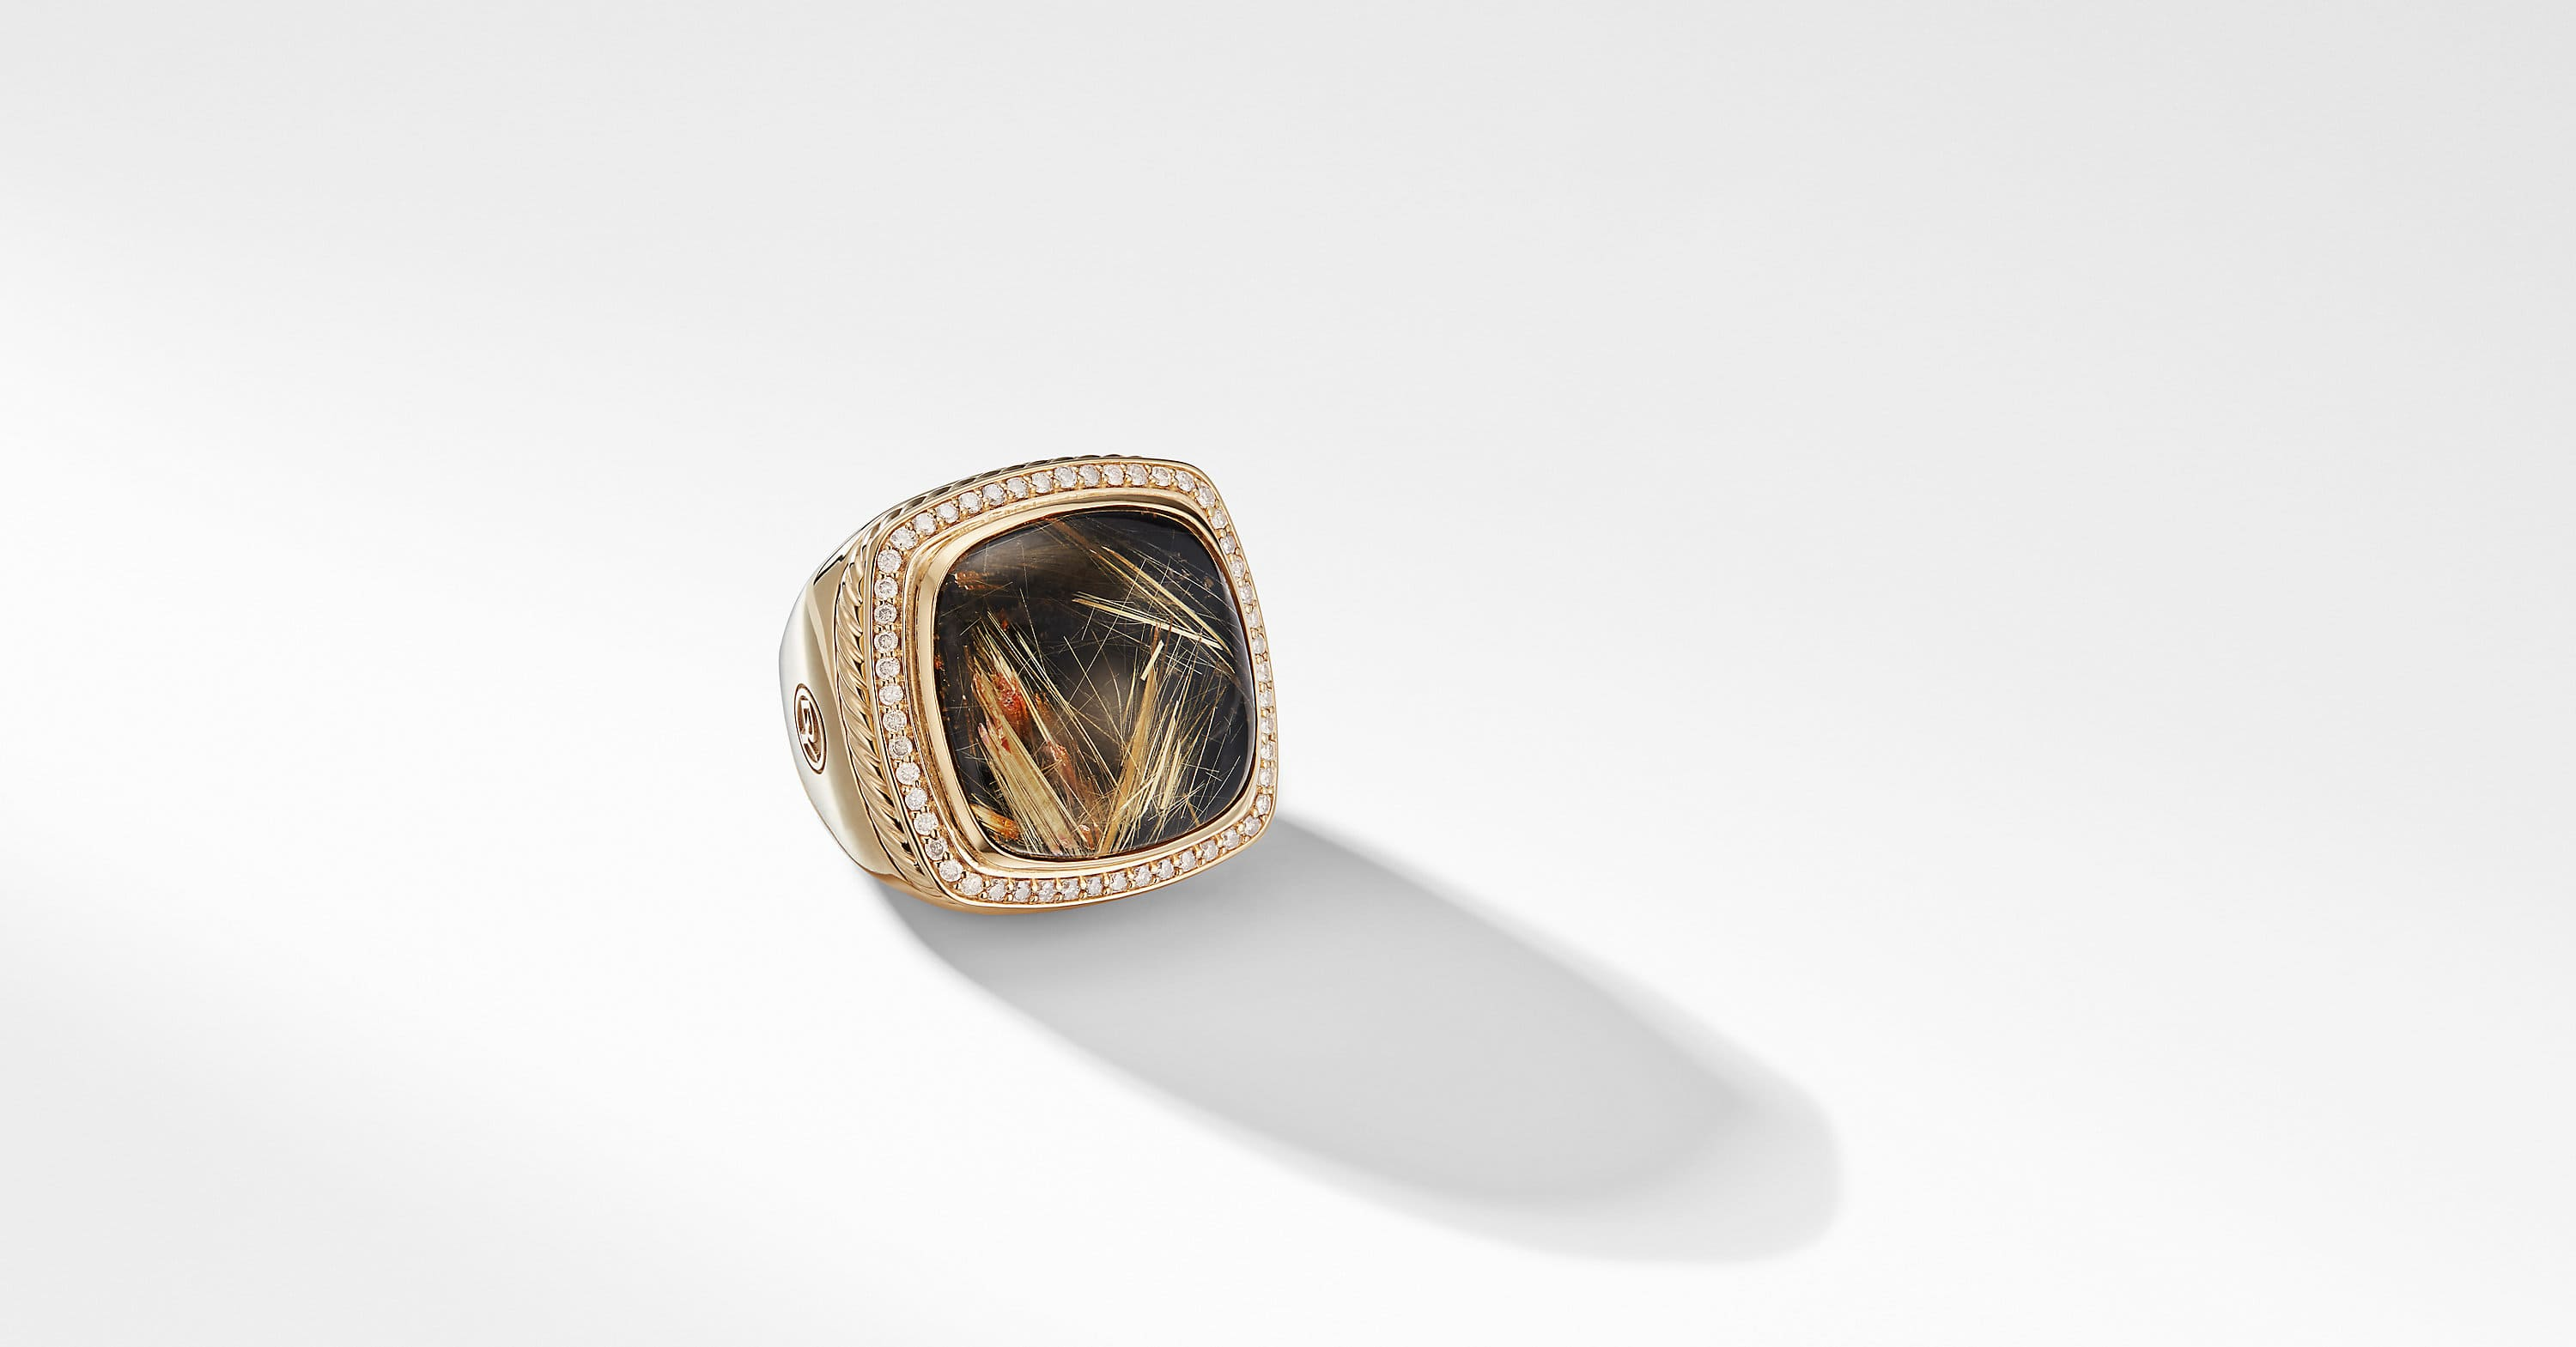 Albion Statement Ring in 18K Gold, 20mm